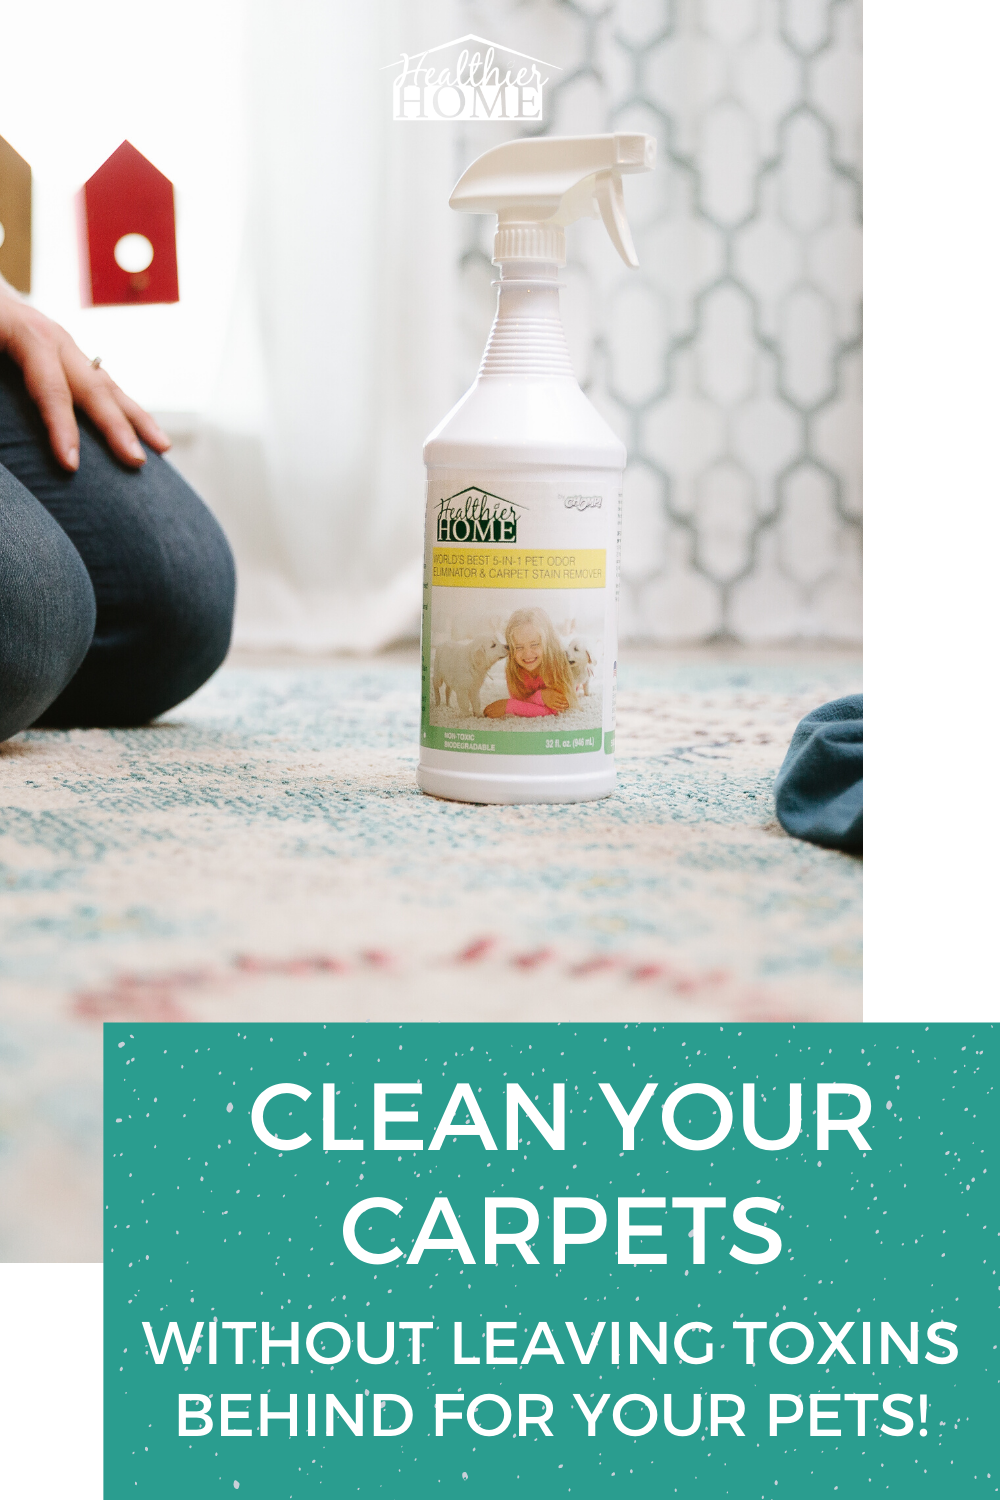 Easy Diy Homemade Carpet Cleaner Recipe Just 2 Ingredients Carpet Cleaner Homemade Cleaning Hacks Diy Cleaning Products